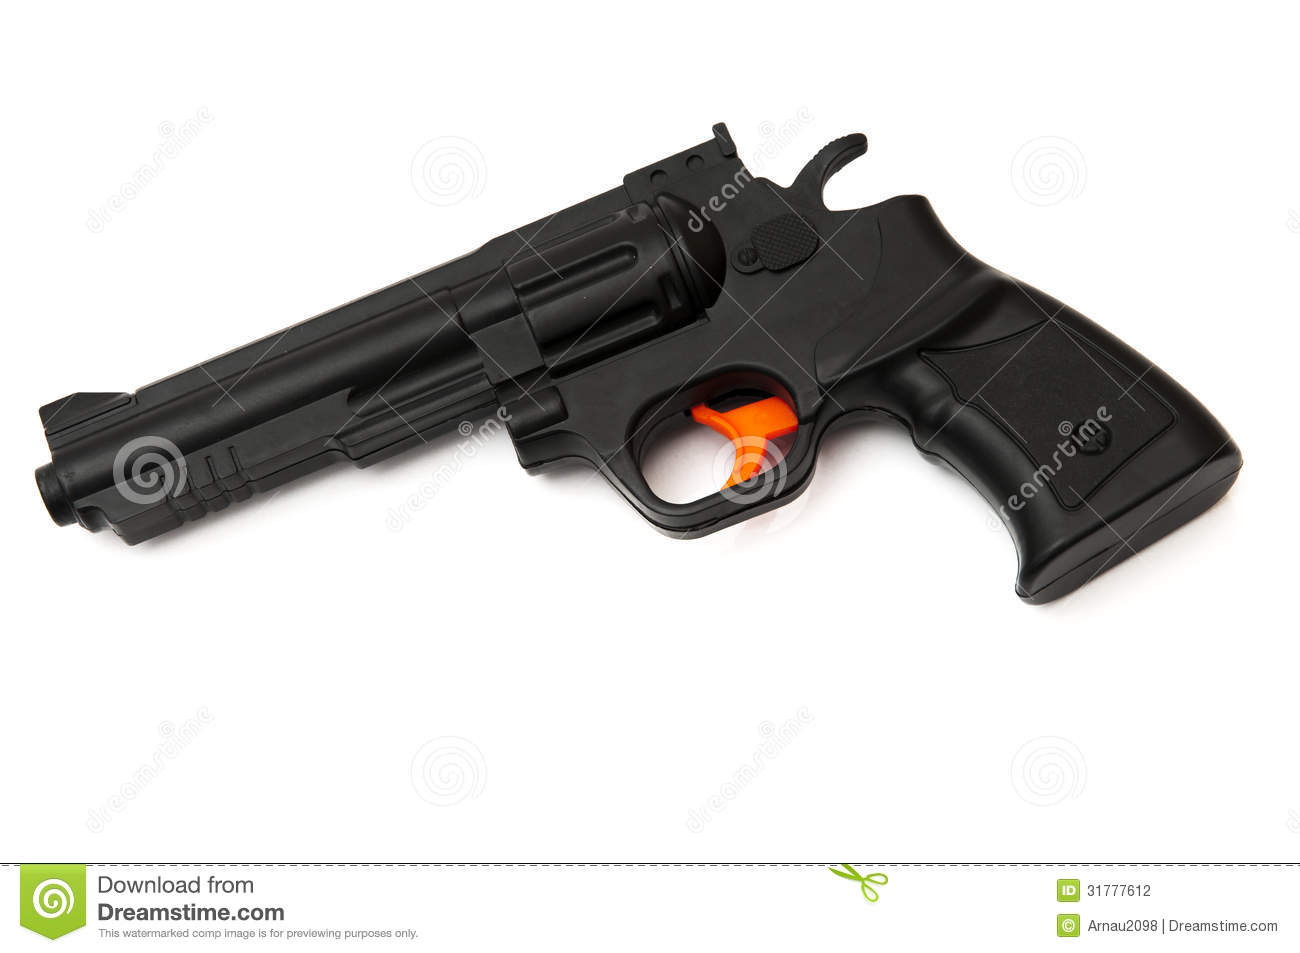 gun white background - photo #31